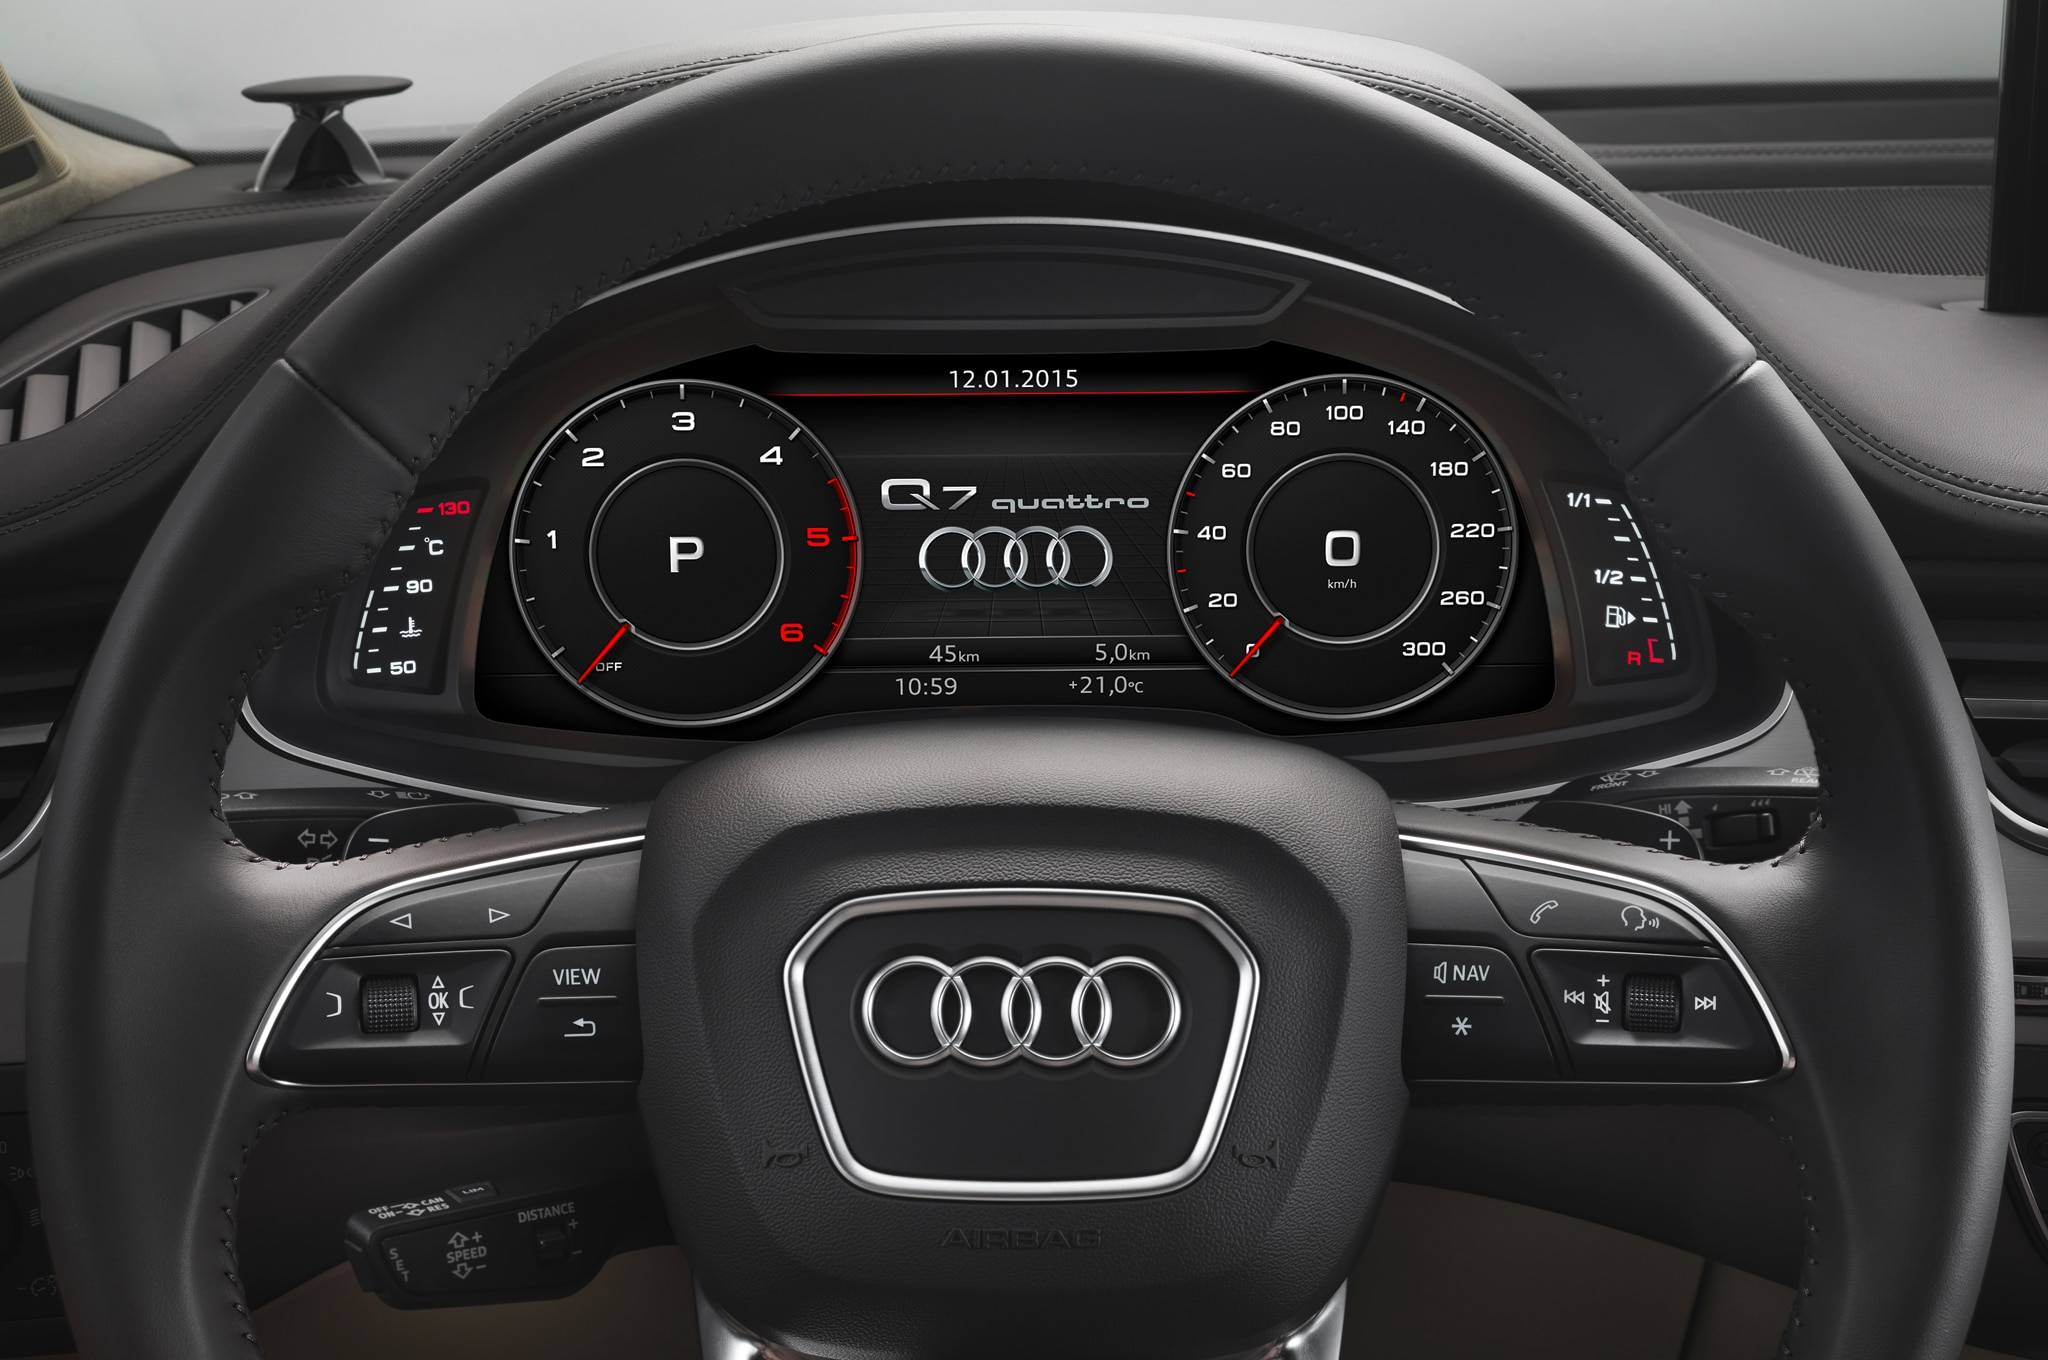 q7 audi audis light motortrend countdown offer feature cluster